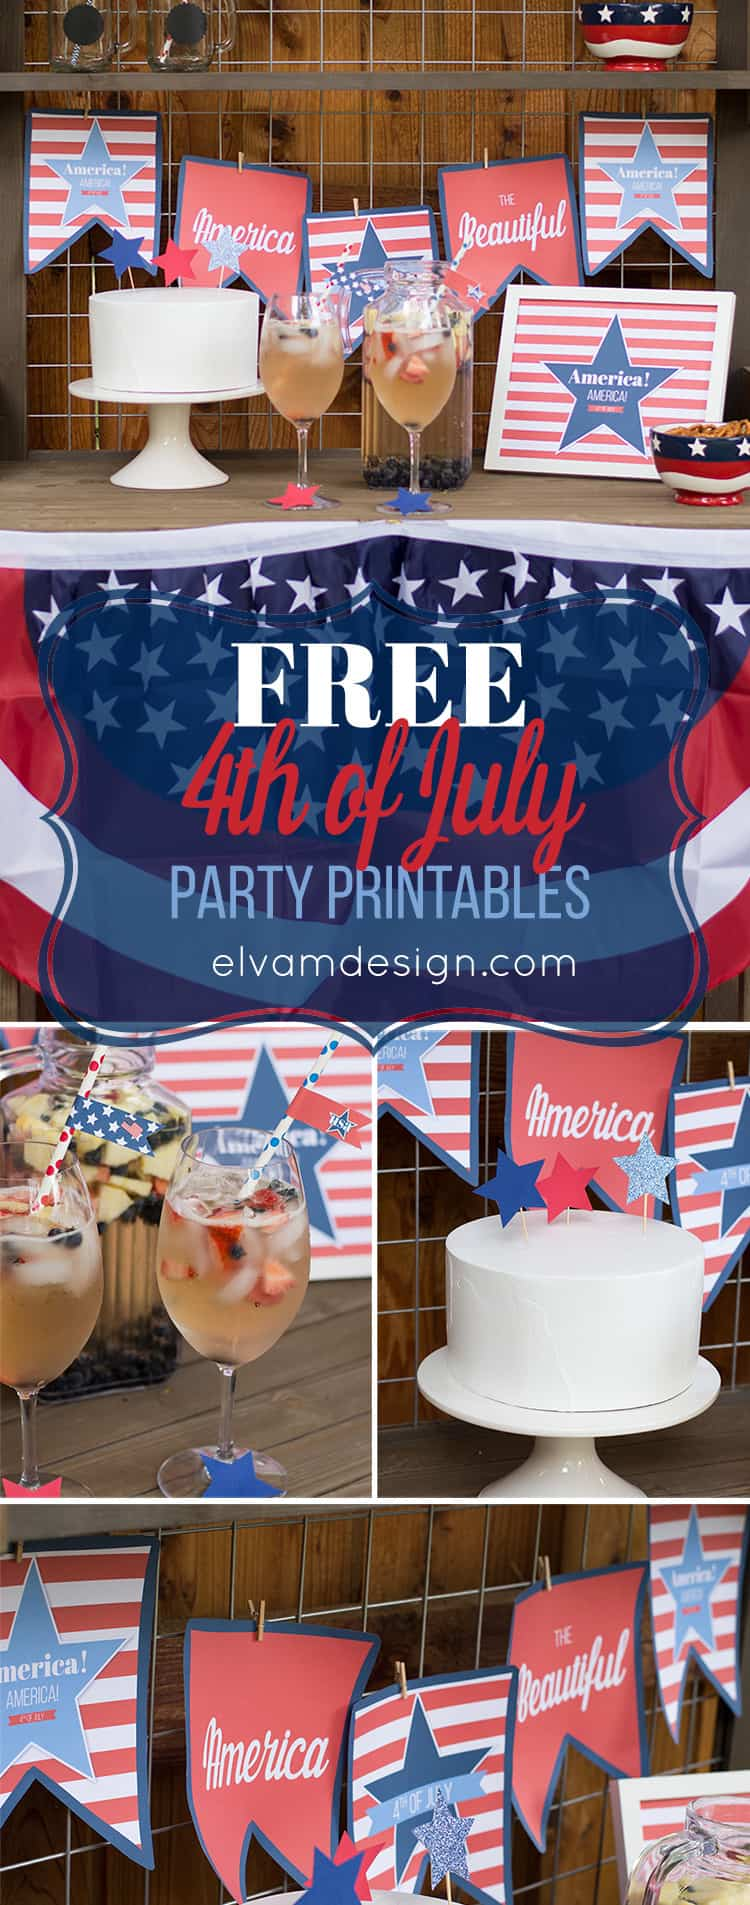 Free 4th of July Printables from Elva M Design Studio